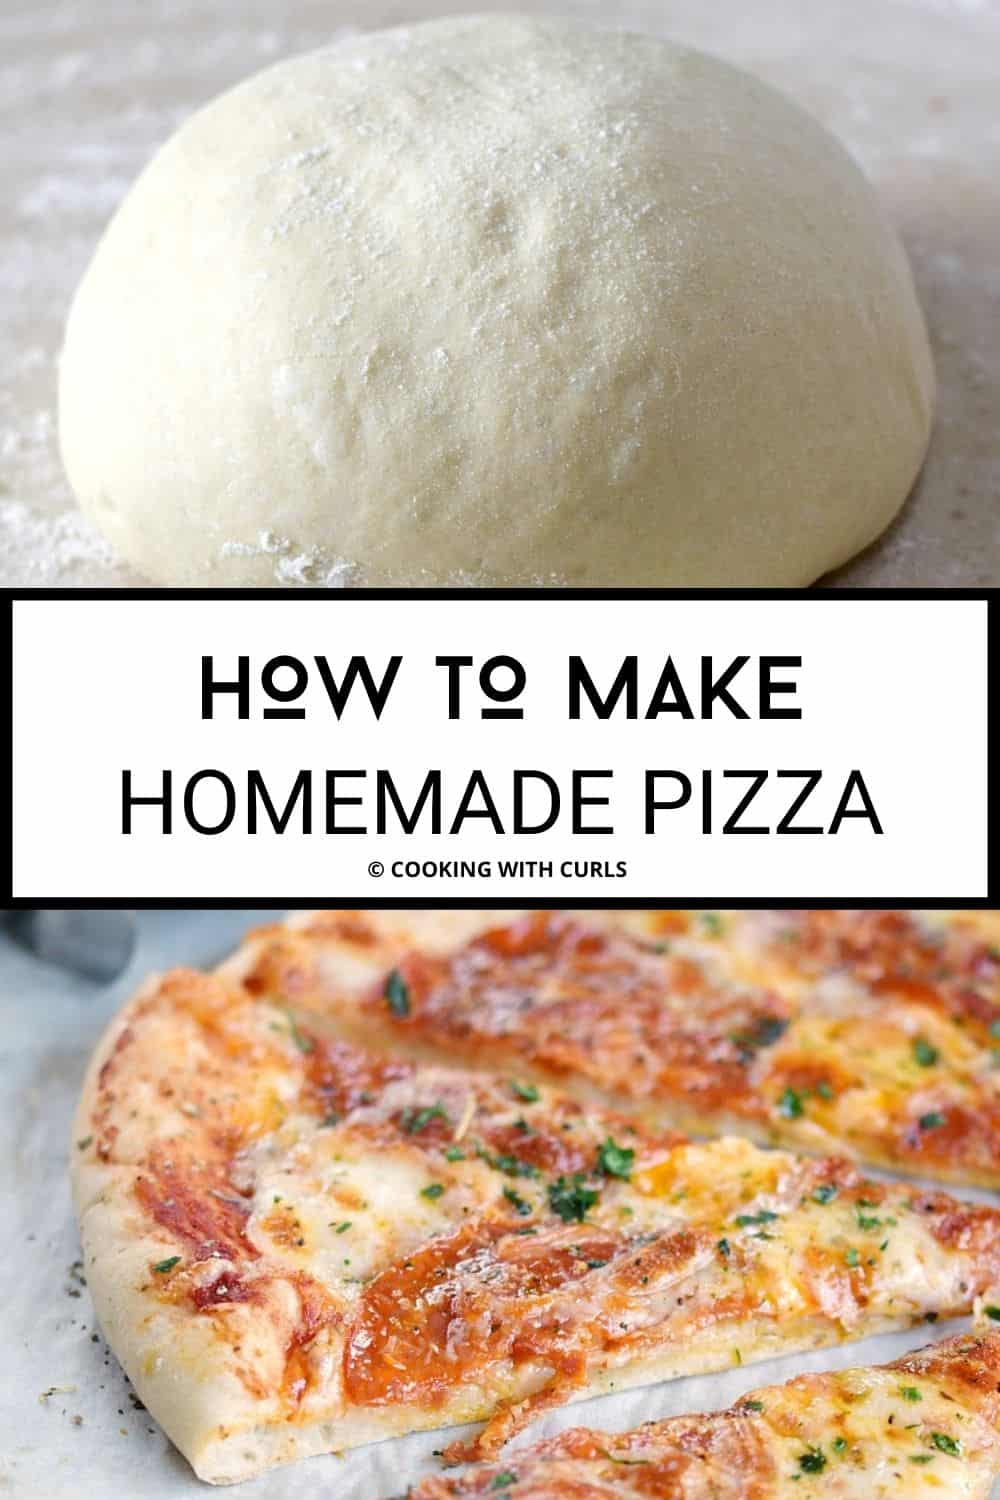 An image of pizza dough on top and an image of pepperoni pizza on the bottom with a title graphic in the middle.